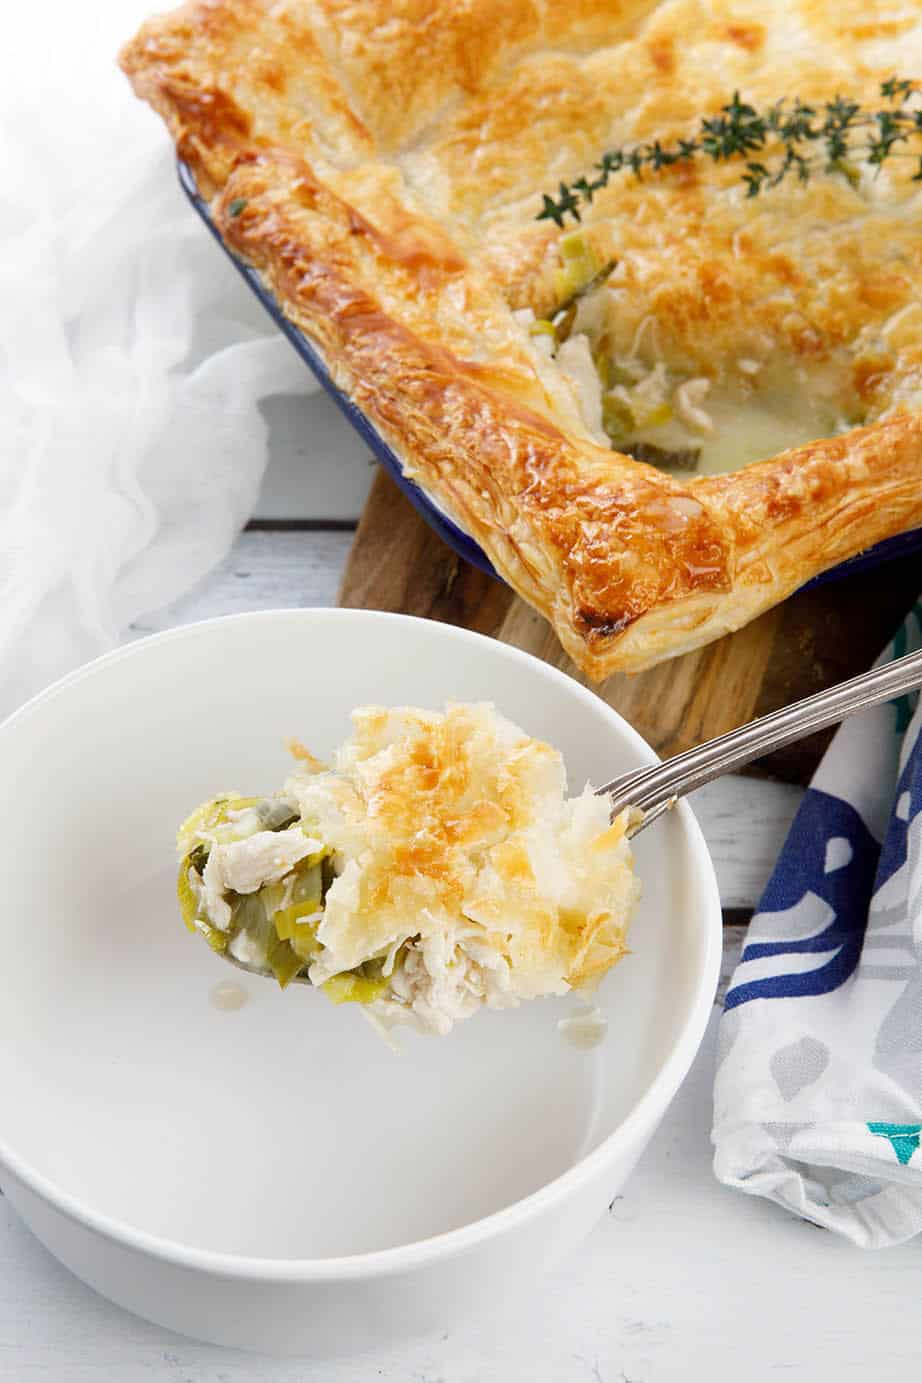 Thermomix Creamy Leek And Chicken Pie Thermokitchen